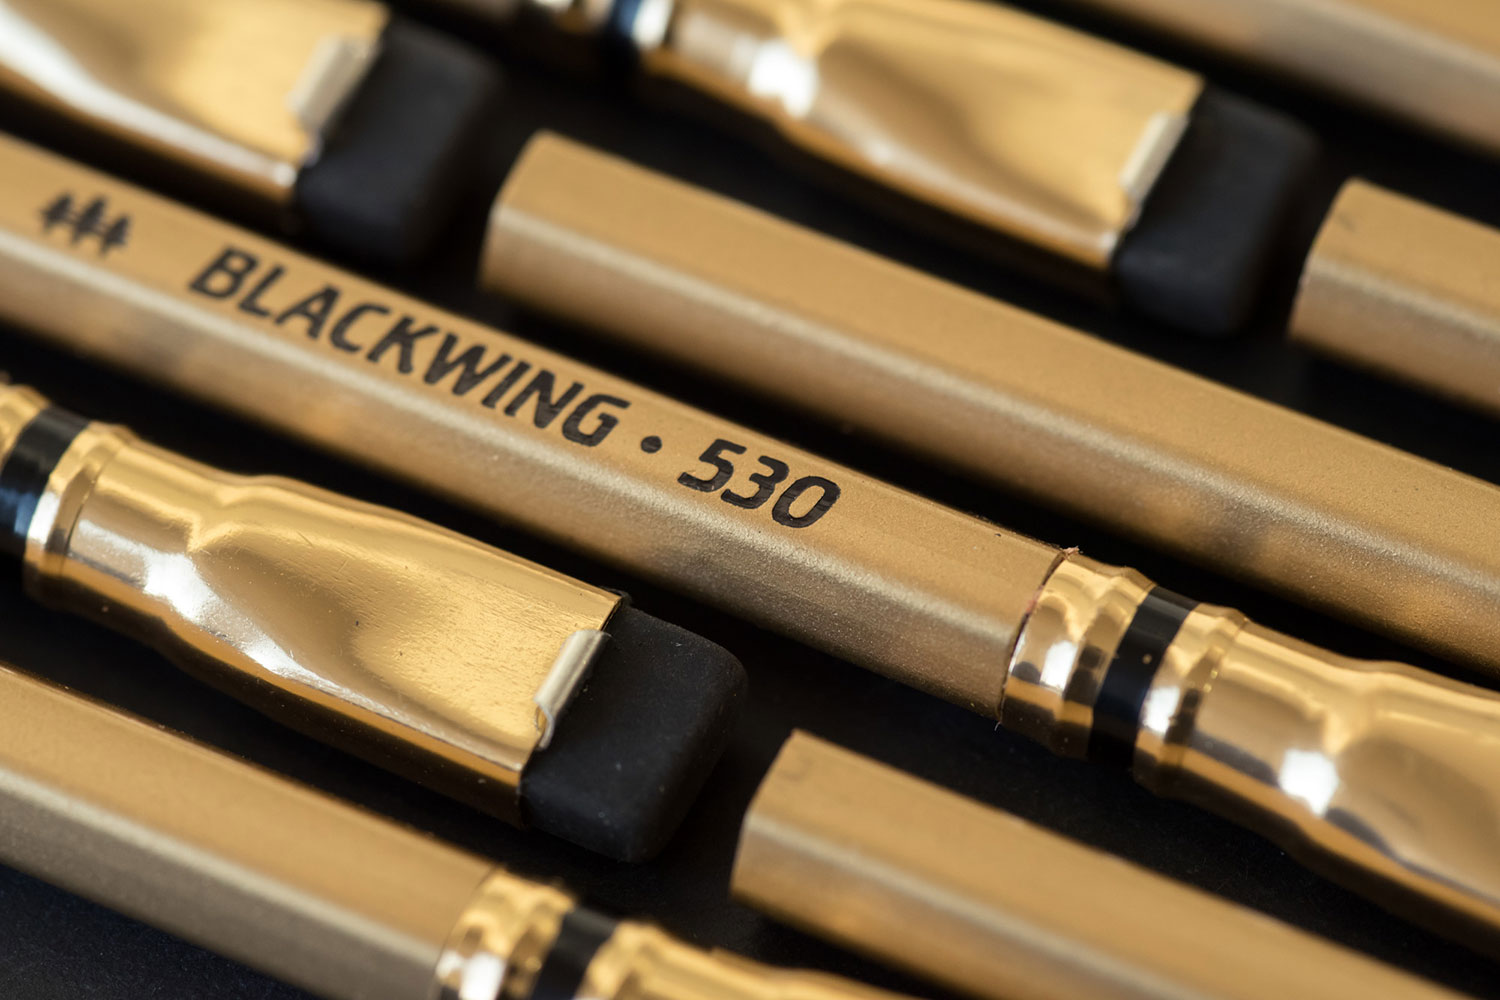 Blackwing Pencils Limited Edition Vol 530